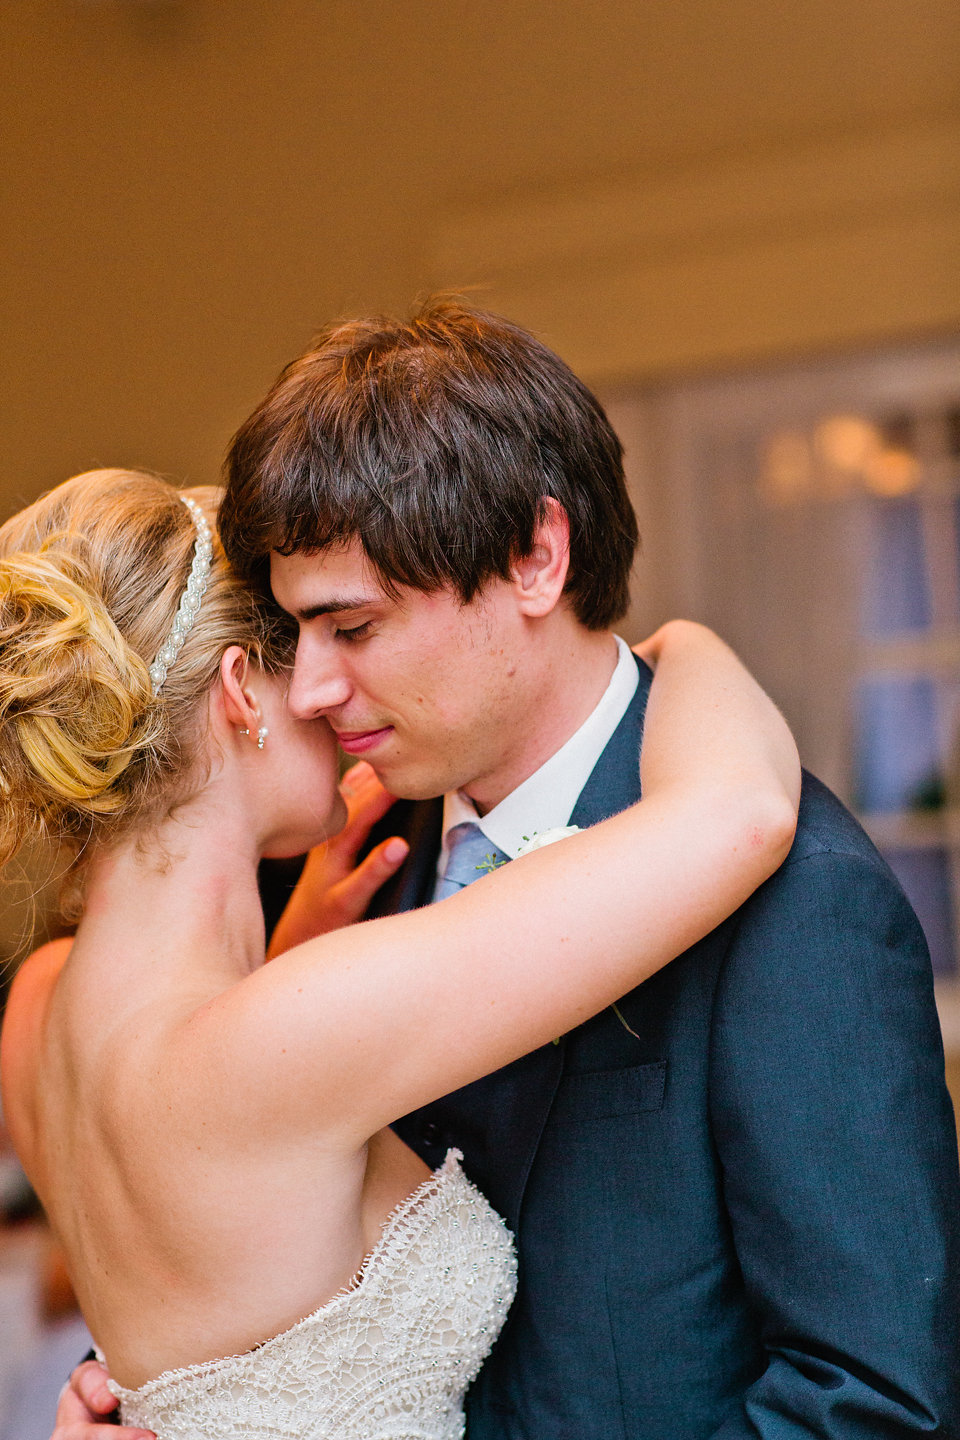 All the feels during the bride and groom's first dance.